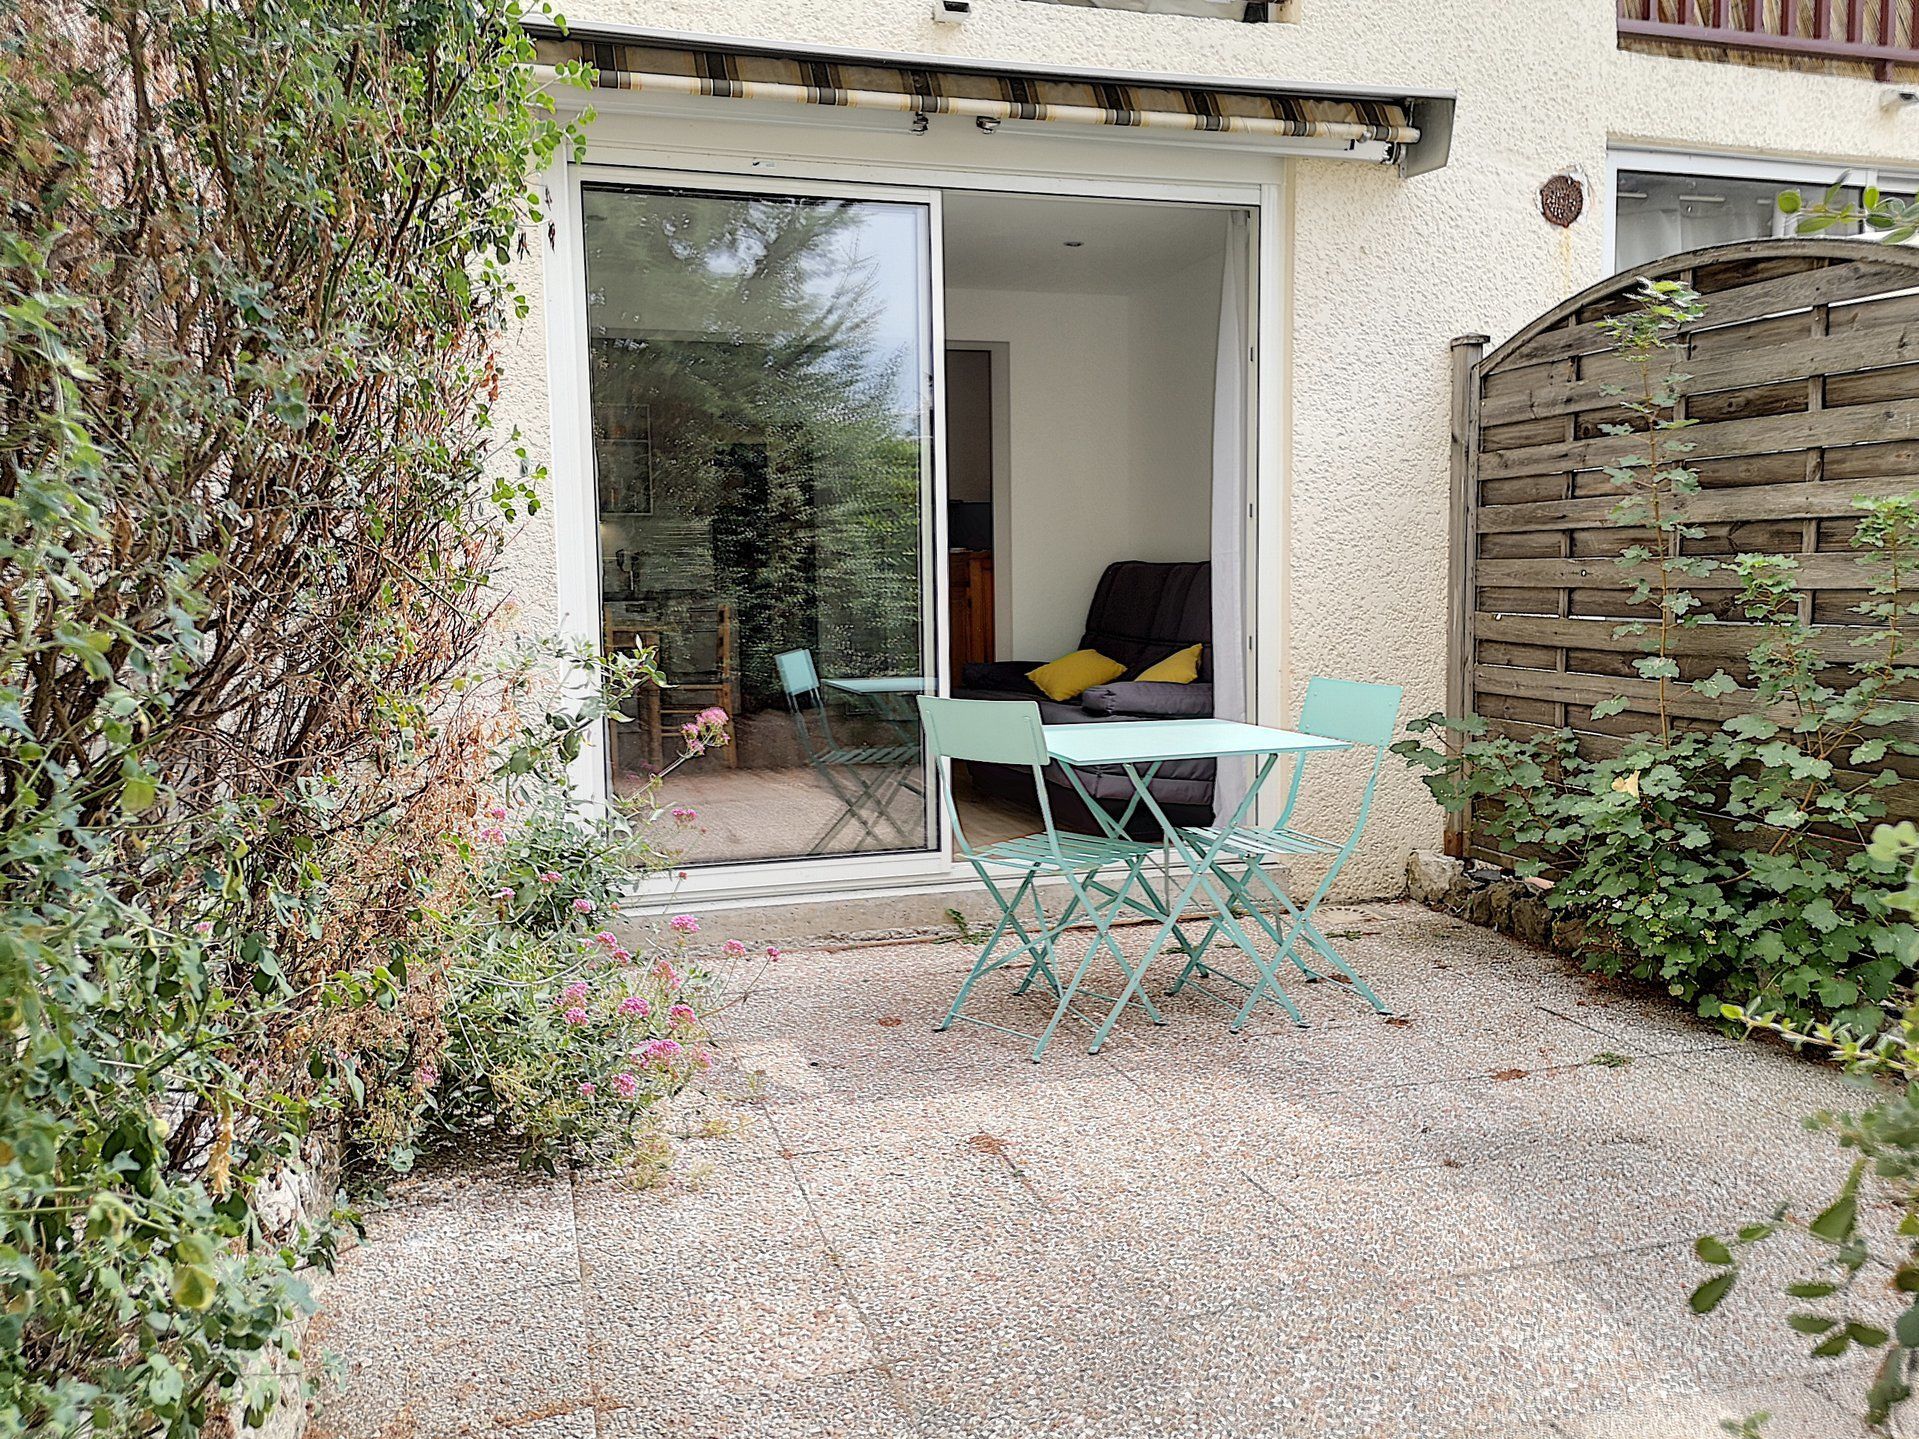 Sale Apartment - Saint-Vallier-de-Thiey